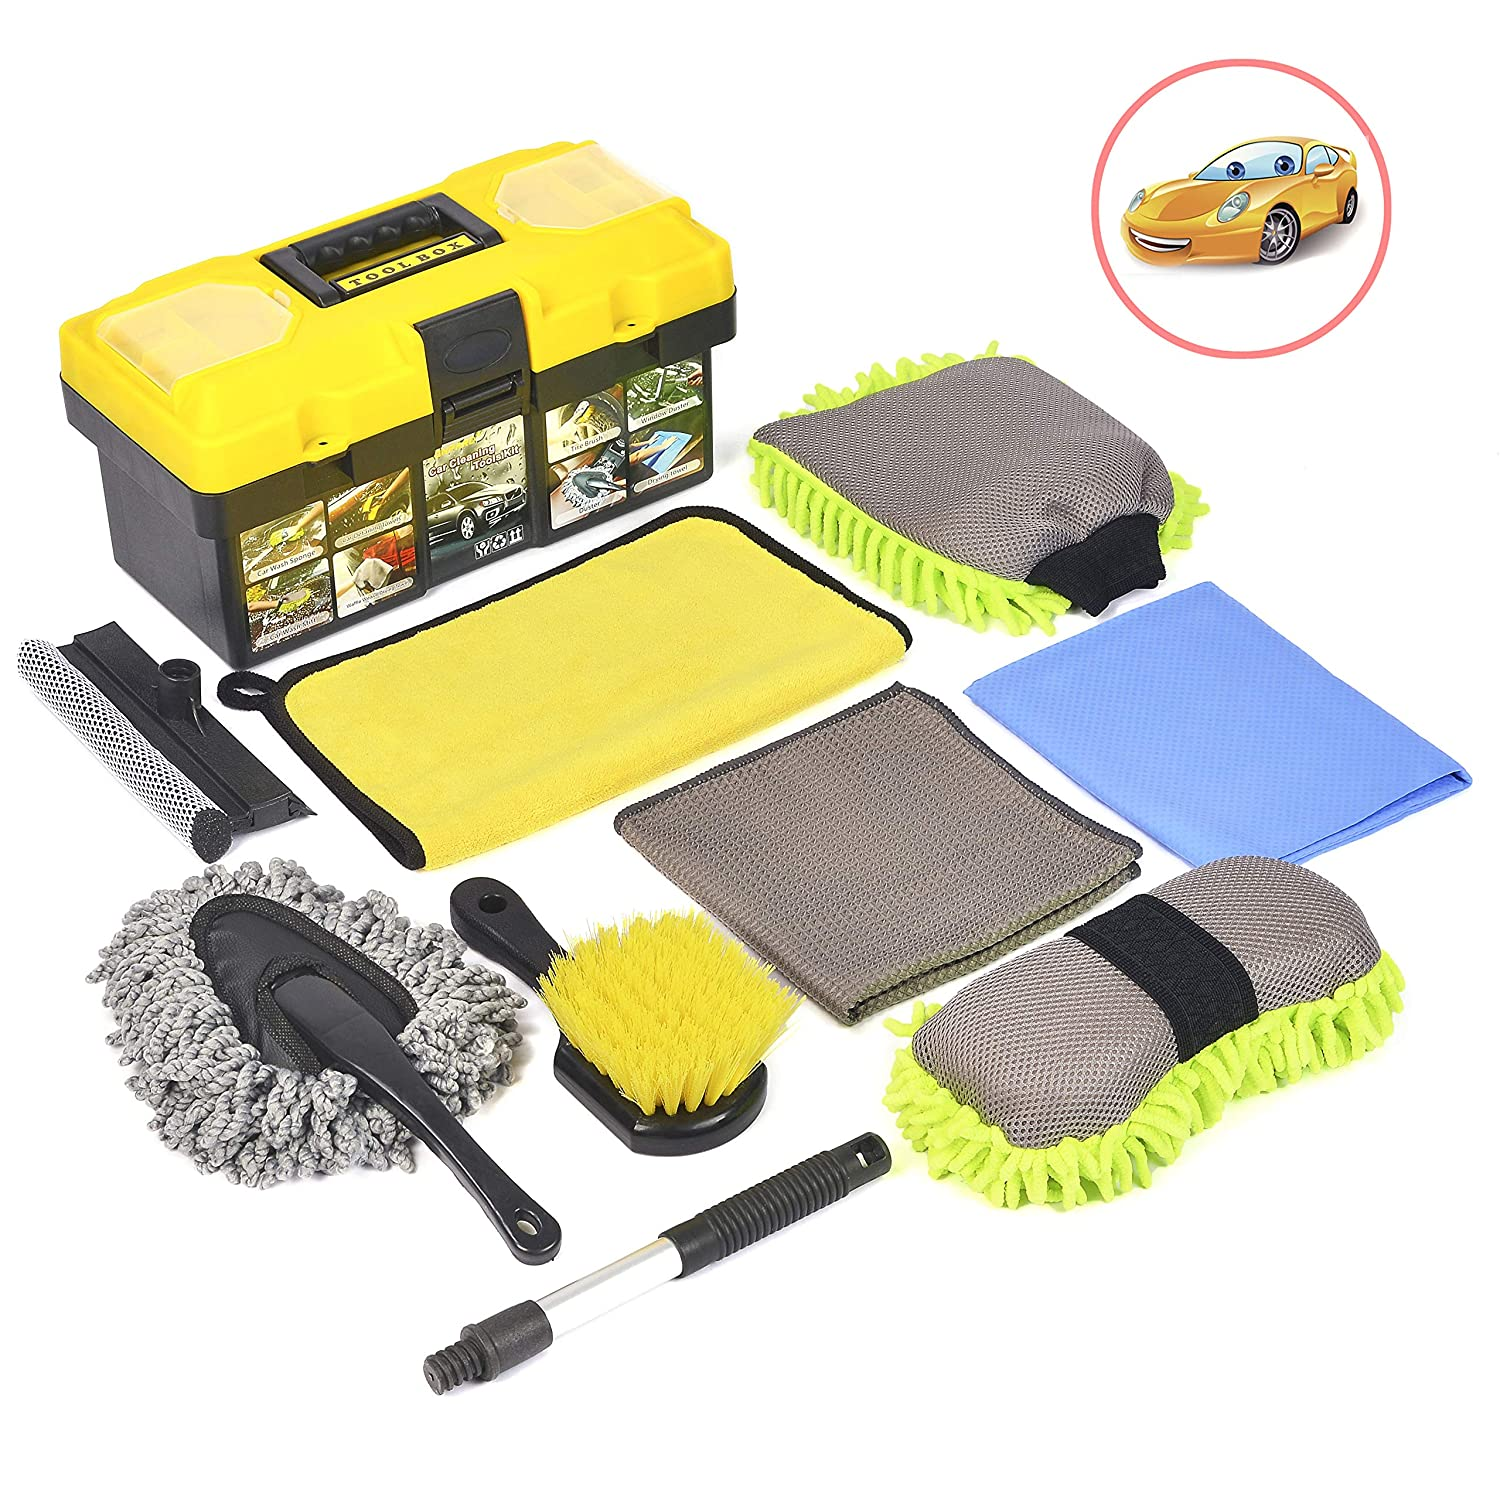 Konpard Car Cleaning Tools Kit 9Pcs Car Wash Tools Kit - Premium Chenille Microfiber Wash Mitt - wash Sponge - Tire Brush - Window Water Blade Brush with Tool Box